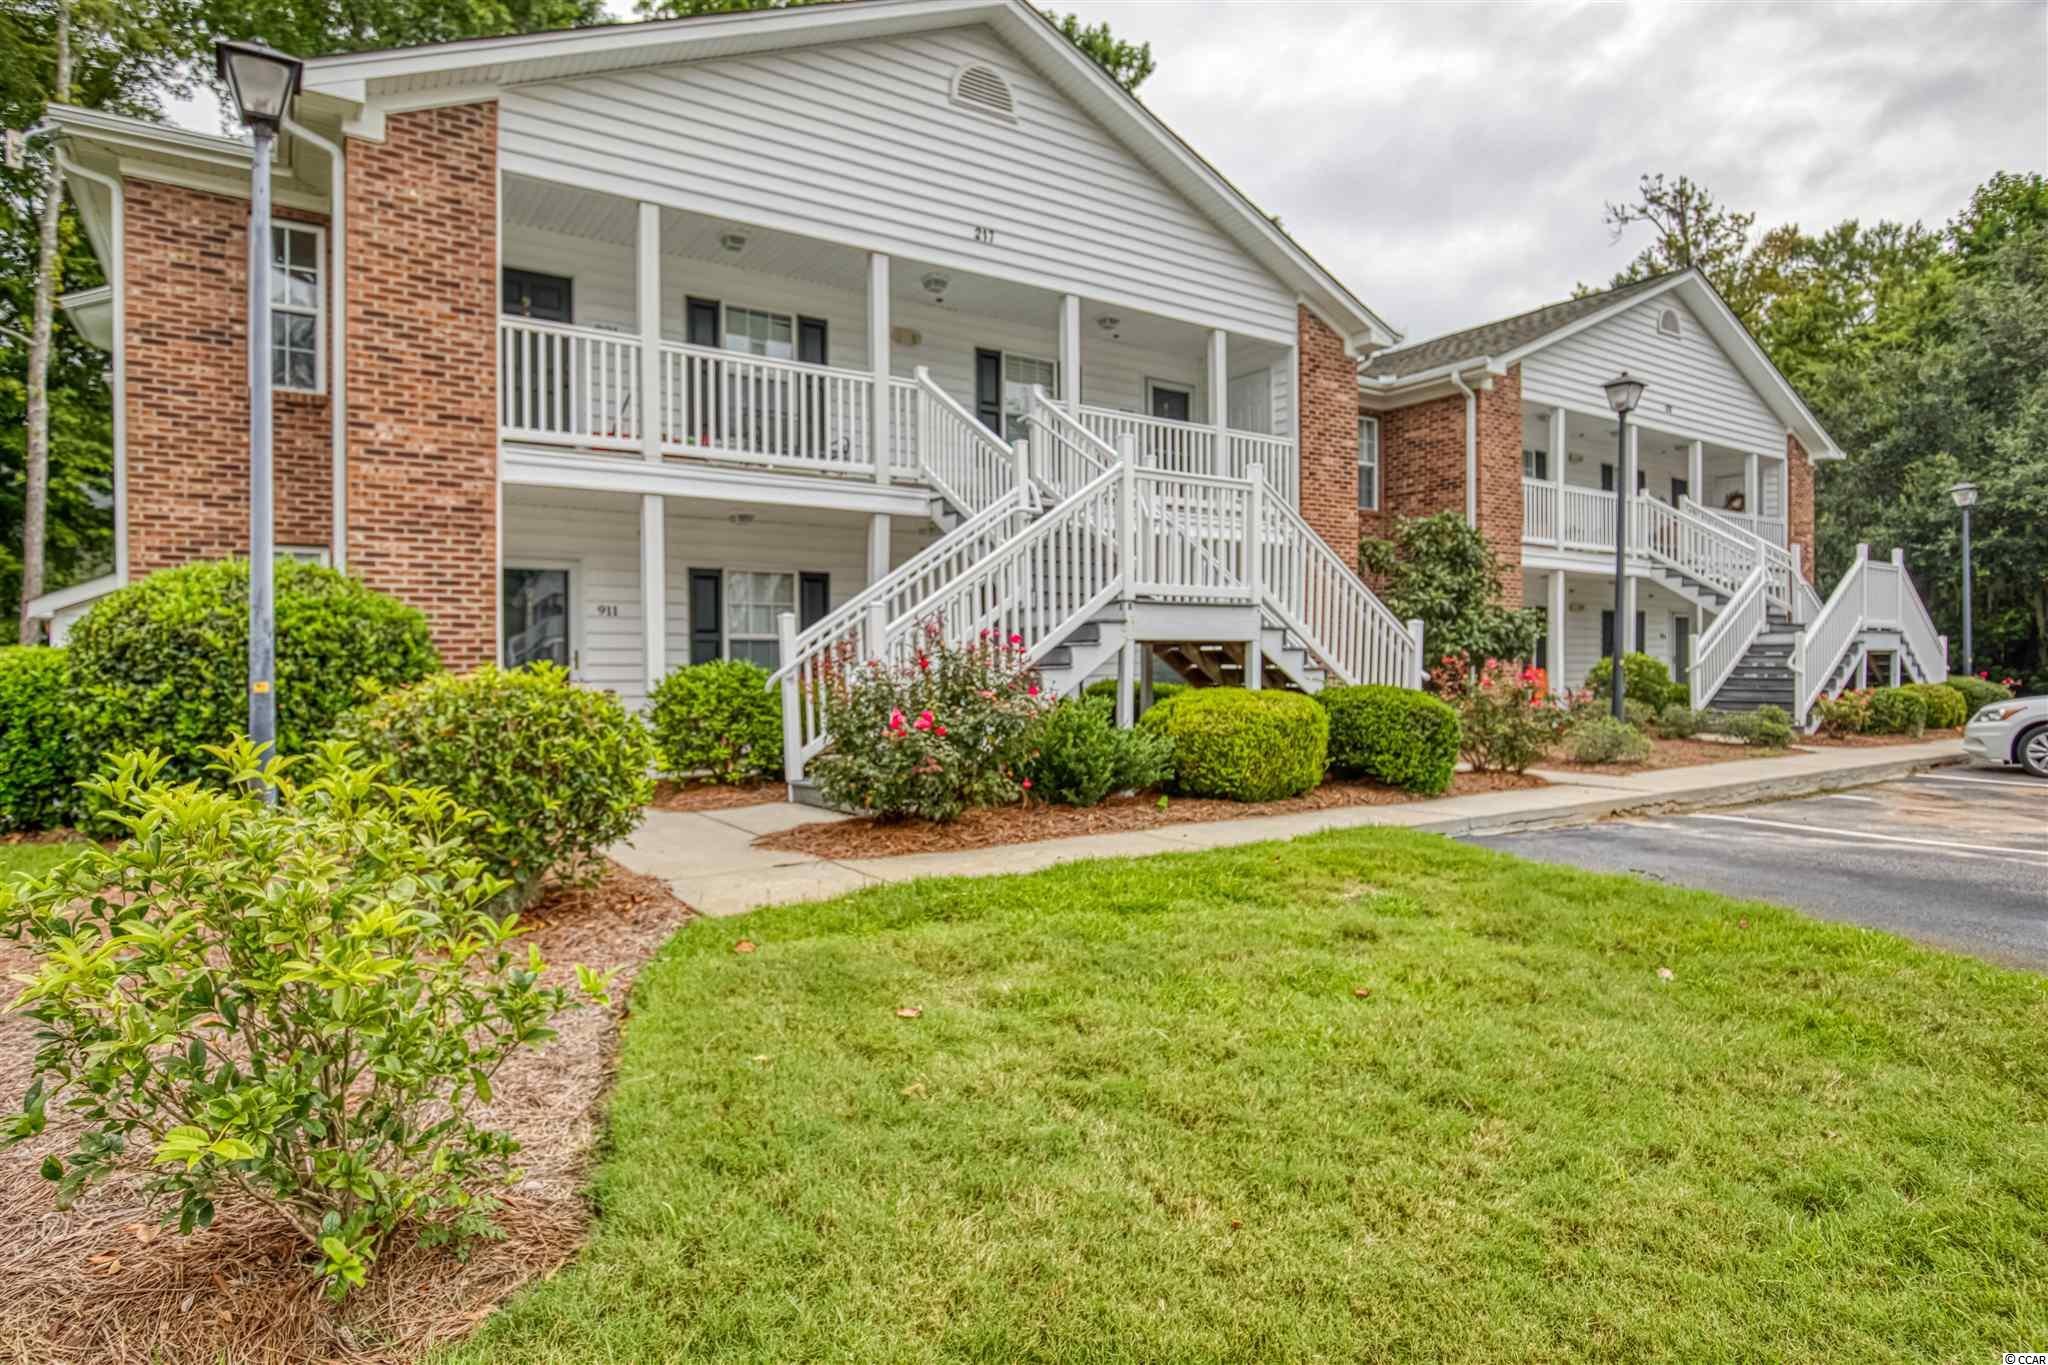 Don't miss your opportunity to buy in this Highly desired East of Hwy. 17 Location. Egret Run is a quiet little tucked in Community close and  convenient to everything; Restaurants, shopping, short drive to Charleston and just minutes to the beautiful Pawleys Beach! This is an Immaculate Turn Key 2 Br Full Two Bath 2nd Floor Condo located in the back of the Community with privacy and lots of upgrades. You'll enjoy Sunrise views as you sip on a cup of Coffee from the front porch! Step into the condo and you find an updated Kitchen with Solid Surface Countertops, Oversized Tile Flooring, Double Stainless Sink, and White Appliances. User friendly Laundry area is behind the Kitchen and Washer and Dryer convey. The AC Unit was installed June of 2020.  You'll appreciate the Open Split floor plan with Nice sized BR's separated by the Guest Bath, Fabulous Eat-in Kitchen area and Spacious Living Room with Hardwood Floors & Crown Molding. Most all of the Dining Room and Living Furniture, Window Treatments and more will stay including the Big Screen TV ! The Master BR has it's own On Suite Bath and there is a Pull Down Attic for extra storage. There is also a nice Storage Room outside the front door for all your Beach items & more. The community boasts a very nice pool that is Card operated for Owners and Guests & your Monthly regime fee covers Trash Pick-up, Water, Pest Control, Exterior Insurance, Basic Cable and Lawn Care. Moving in could not be easier! Pet Friendly Community & would make a great Permanent Residence, Second Home, or Investment Property! This one wont last long so don't delay and start living the Pawleys Island Lifestyle today!